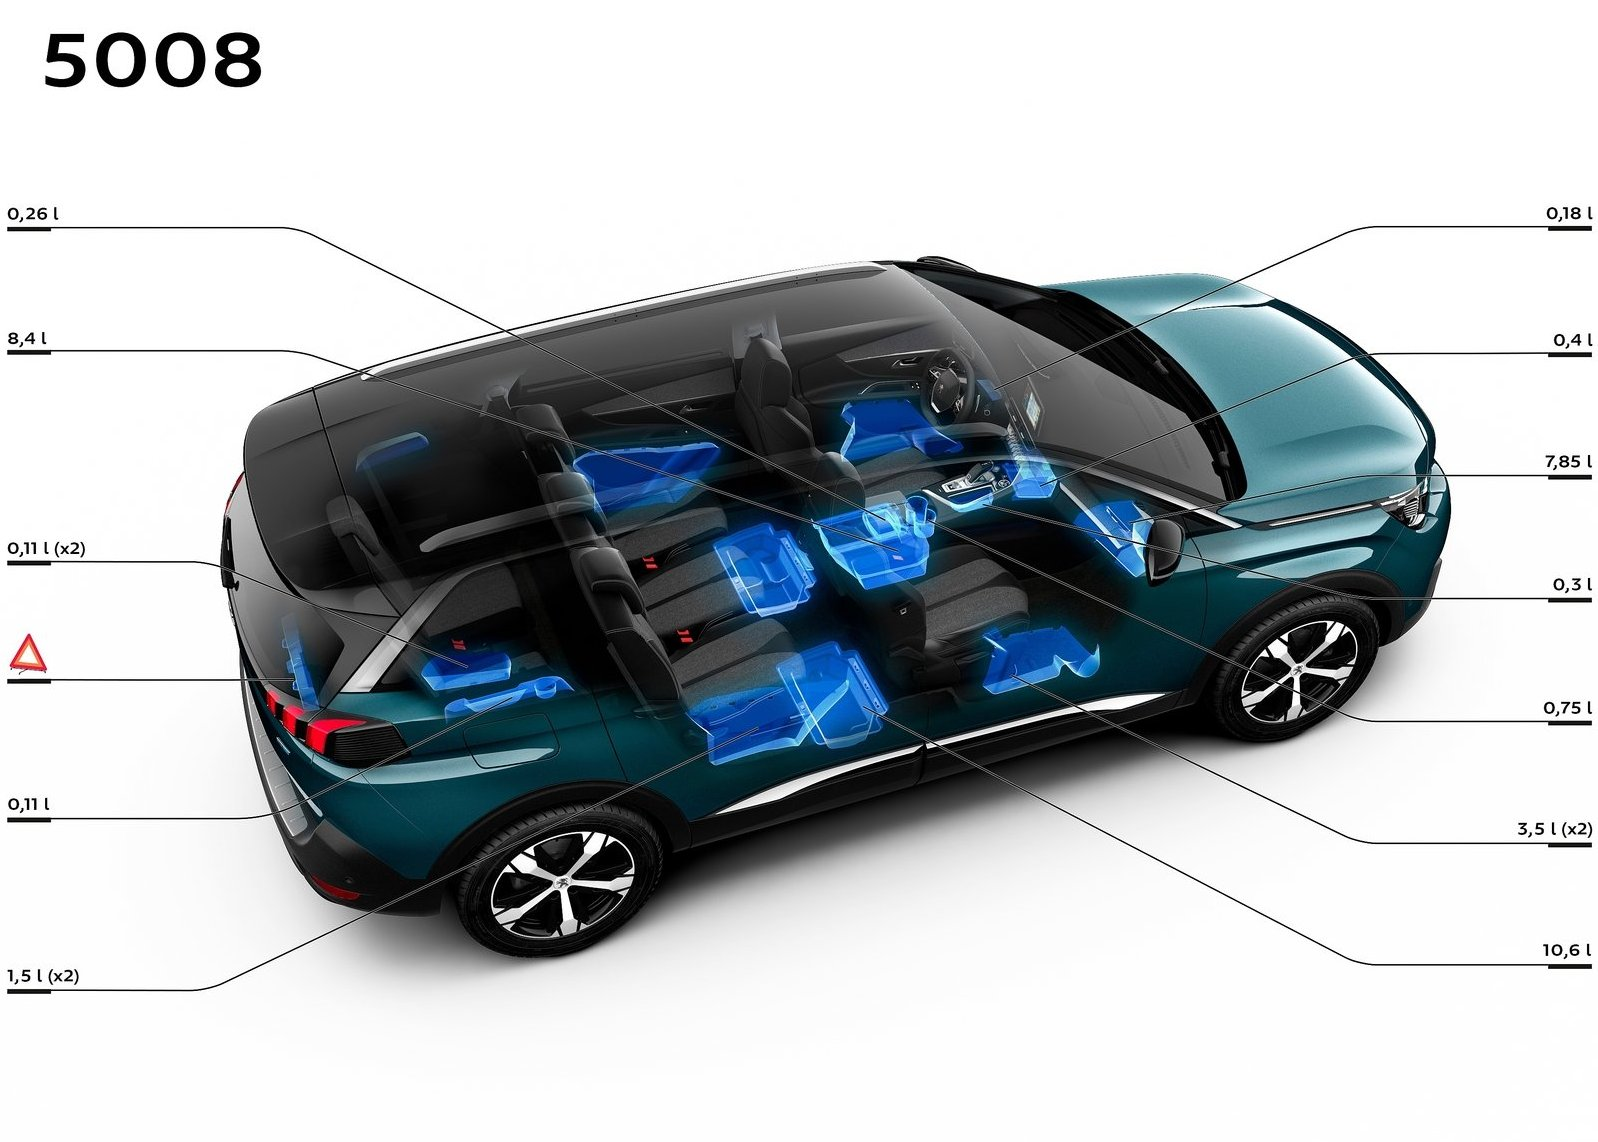 2017 Peugeot 5008 features infografis